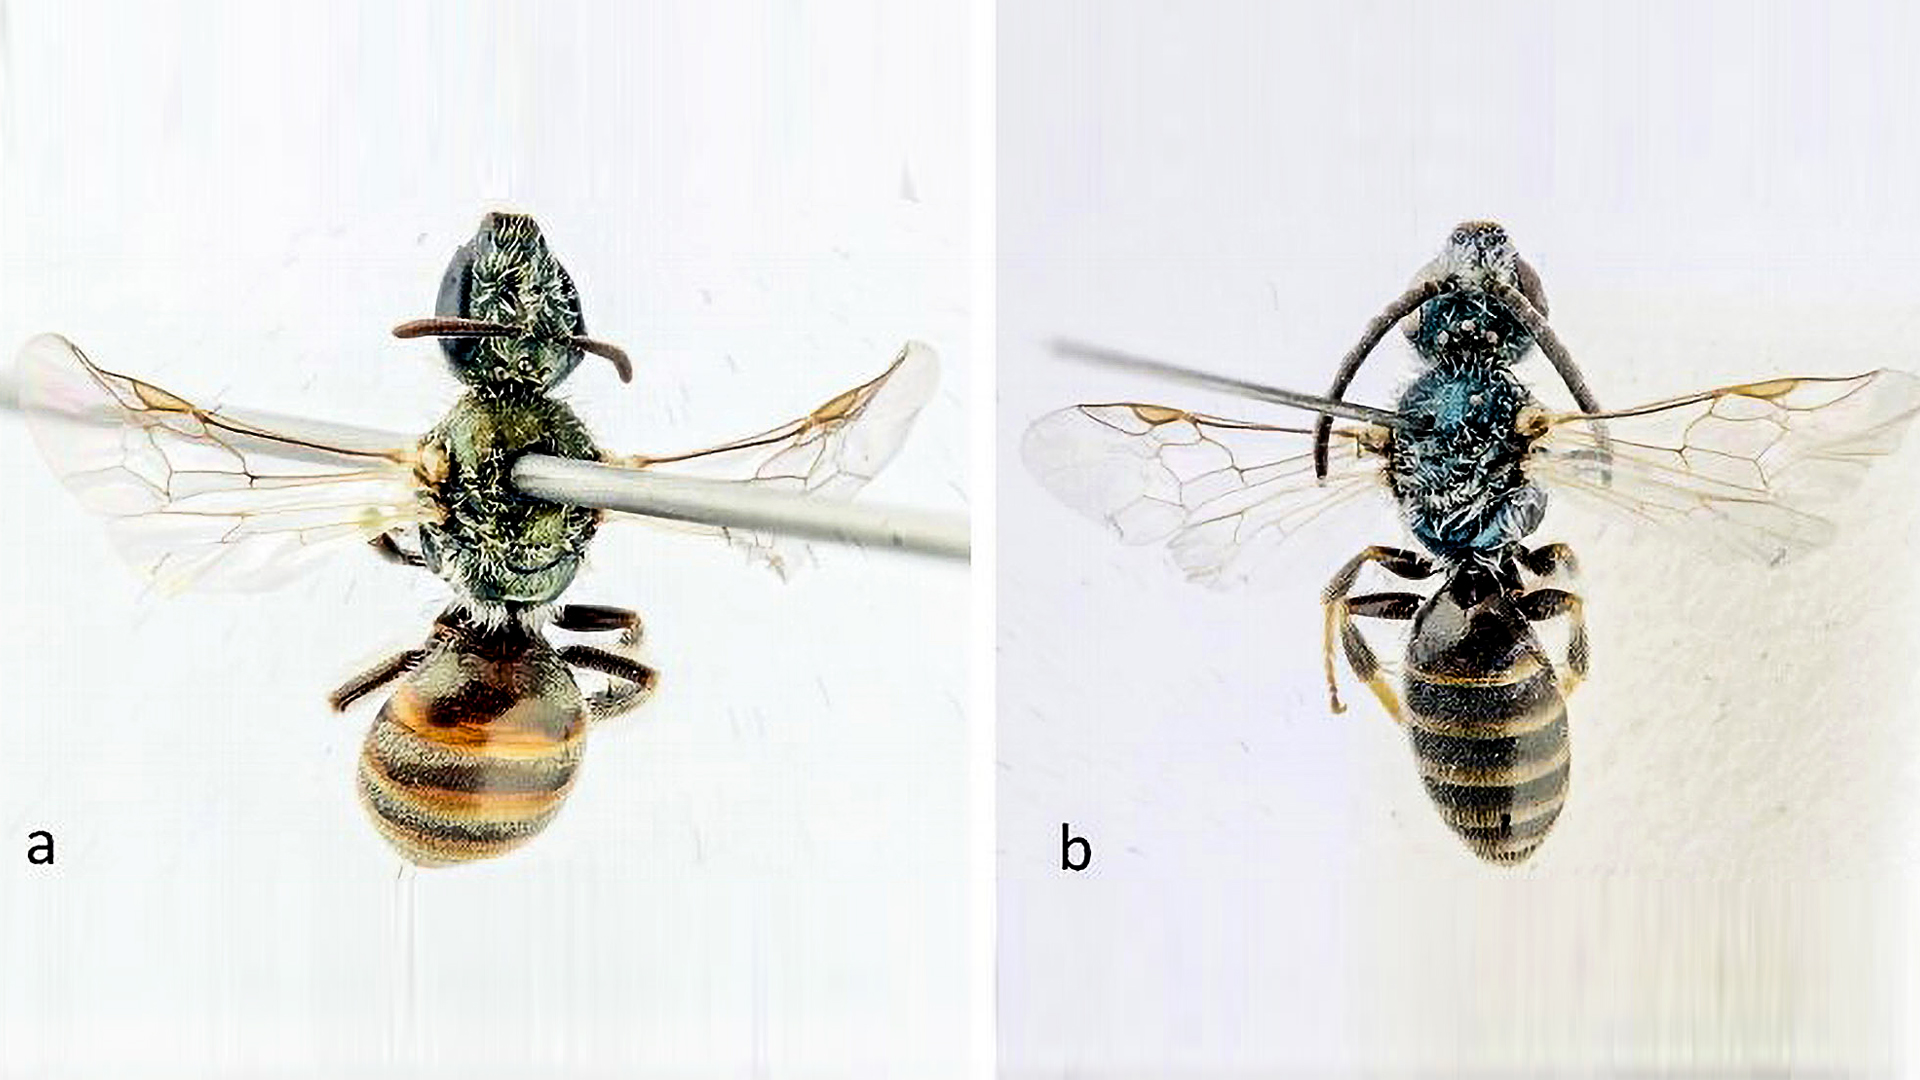 Discovery Of New Species Gives Hope For Wild Bee Preservation - Zenger News